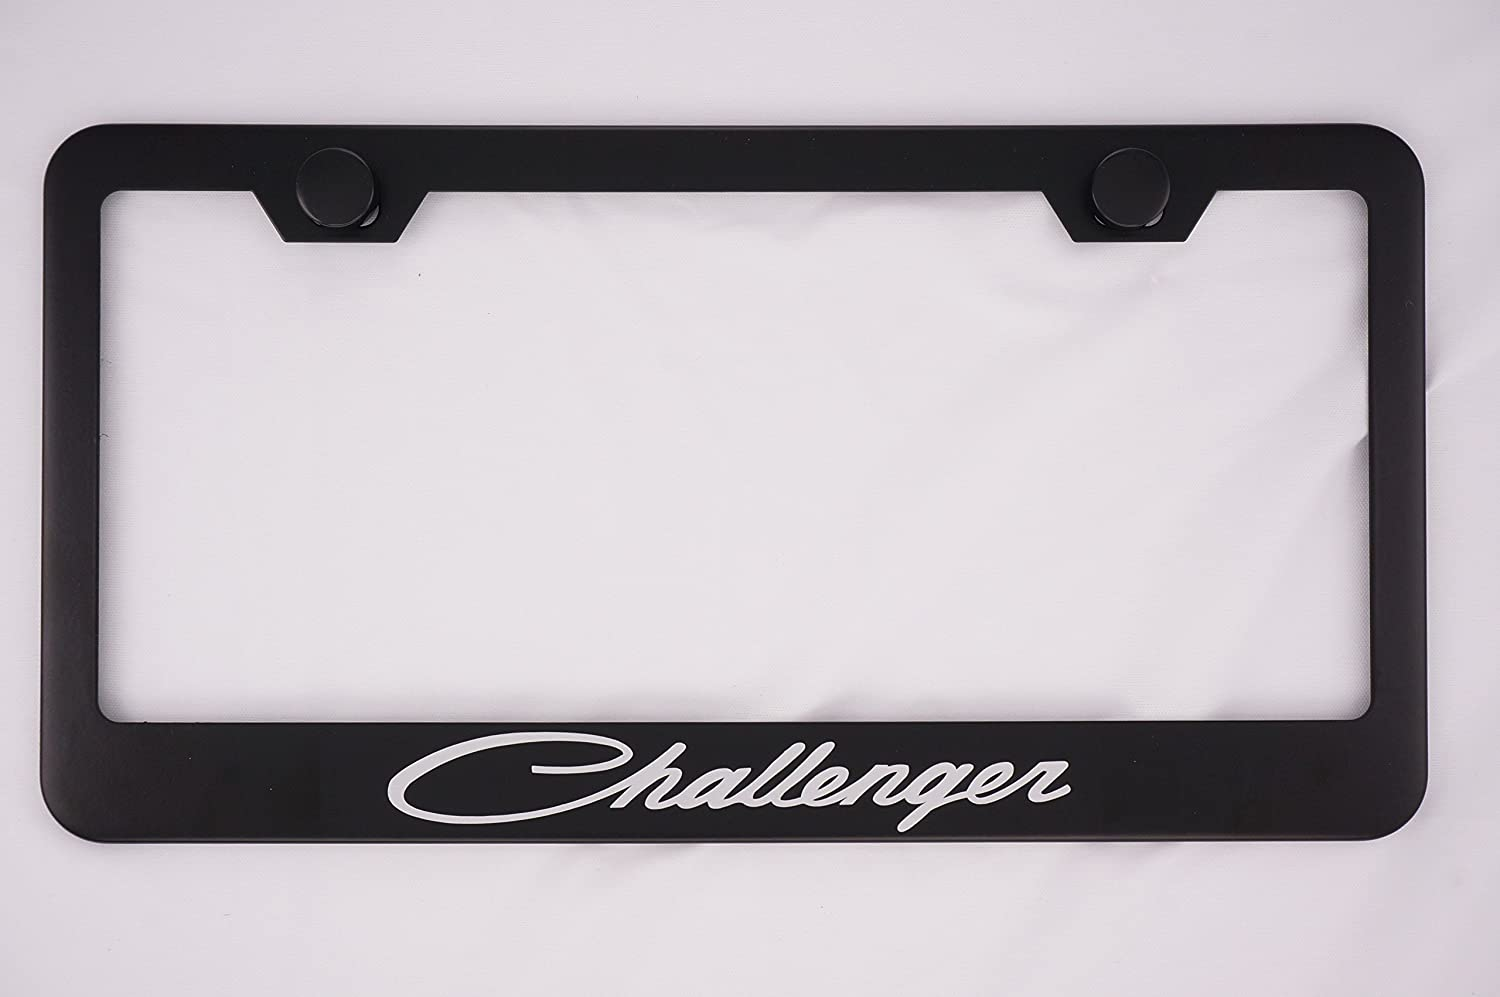 Dodge Challenger Black License Plate Frame with Caps